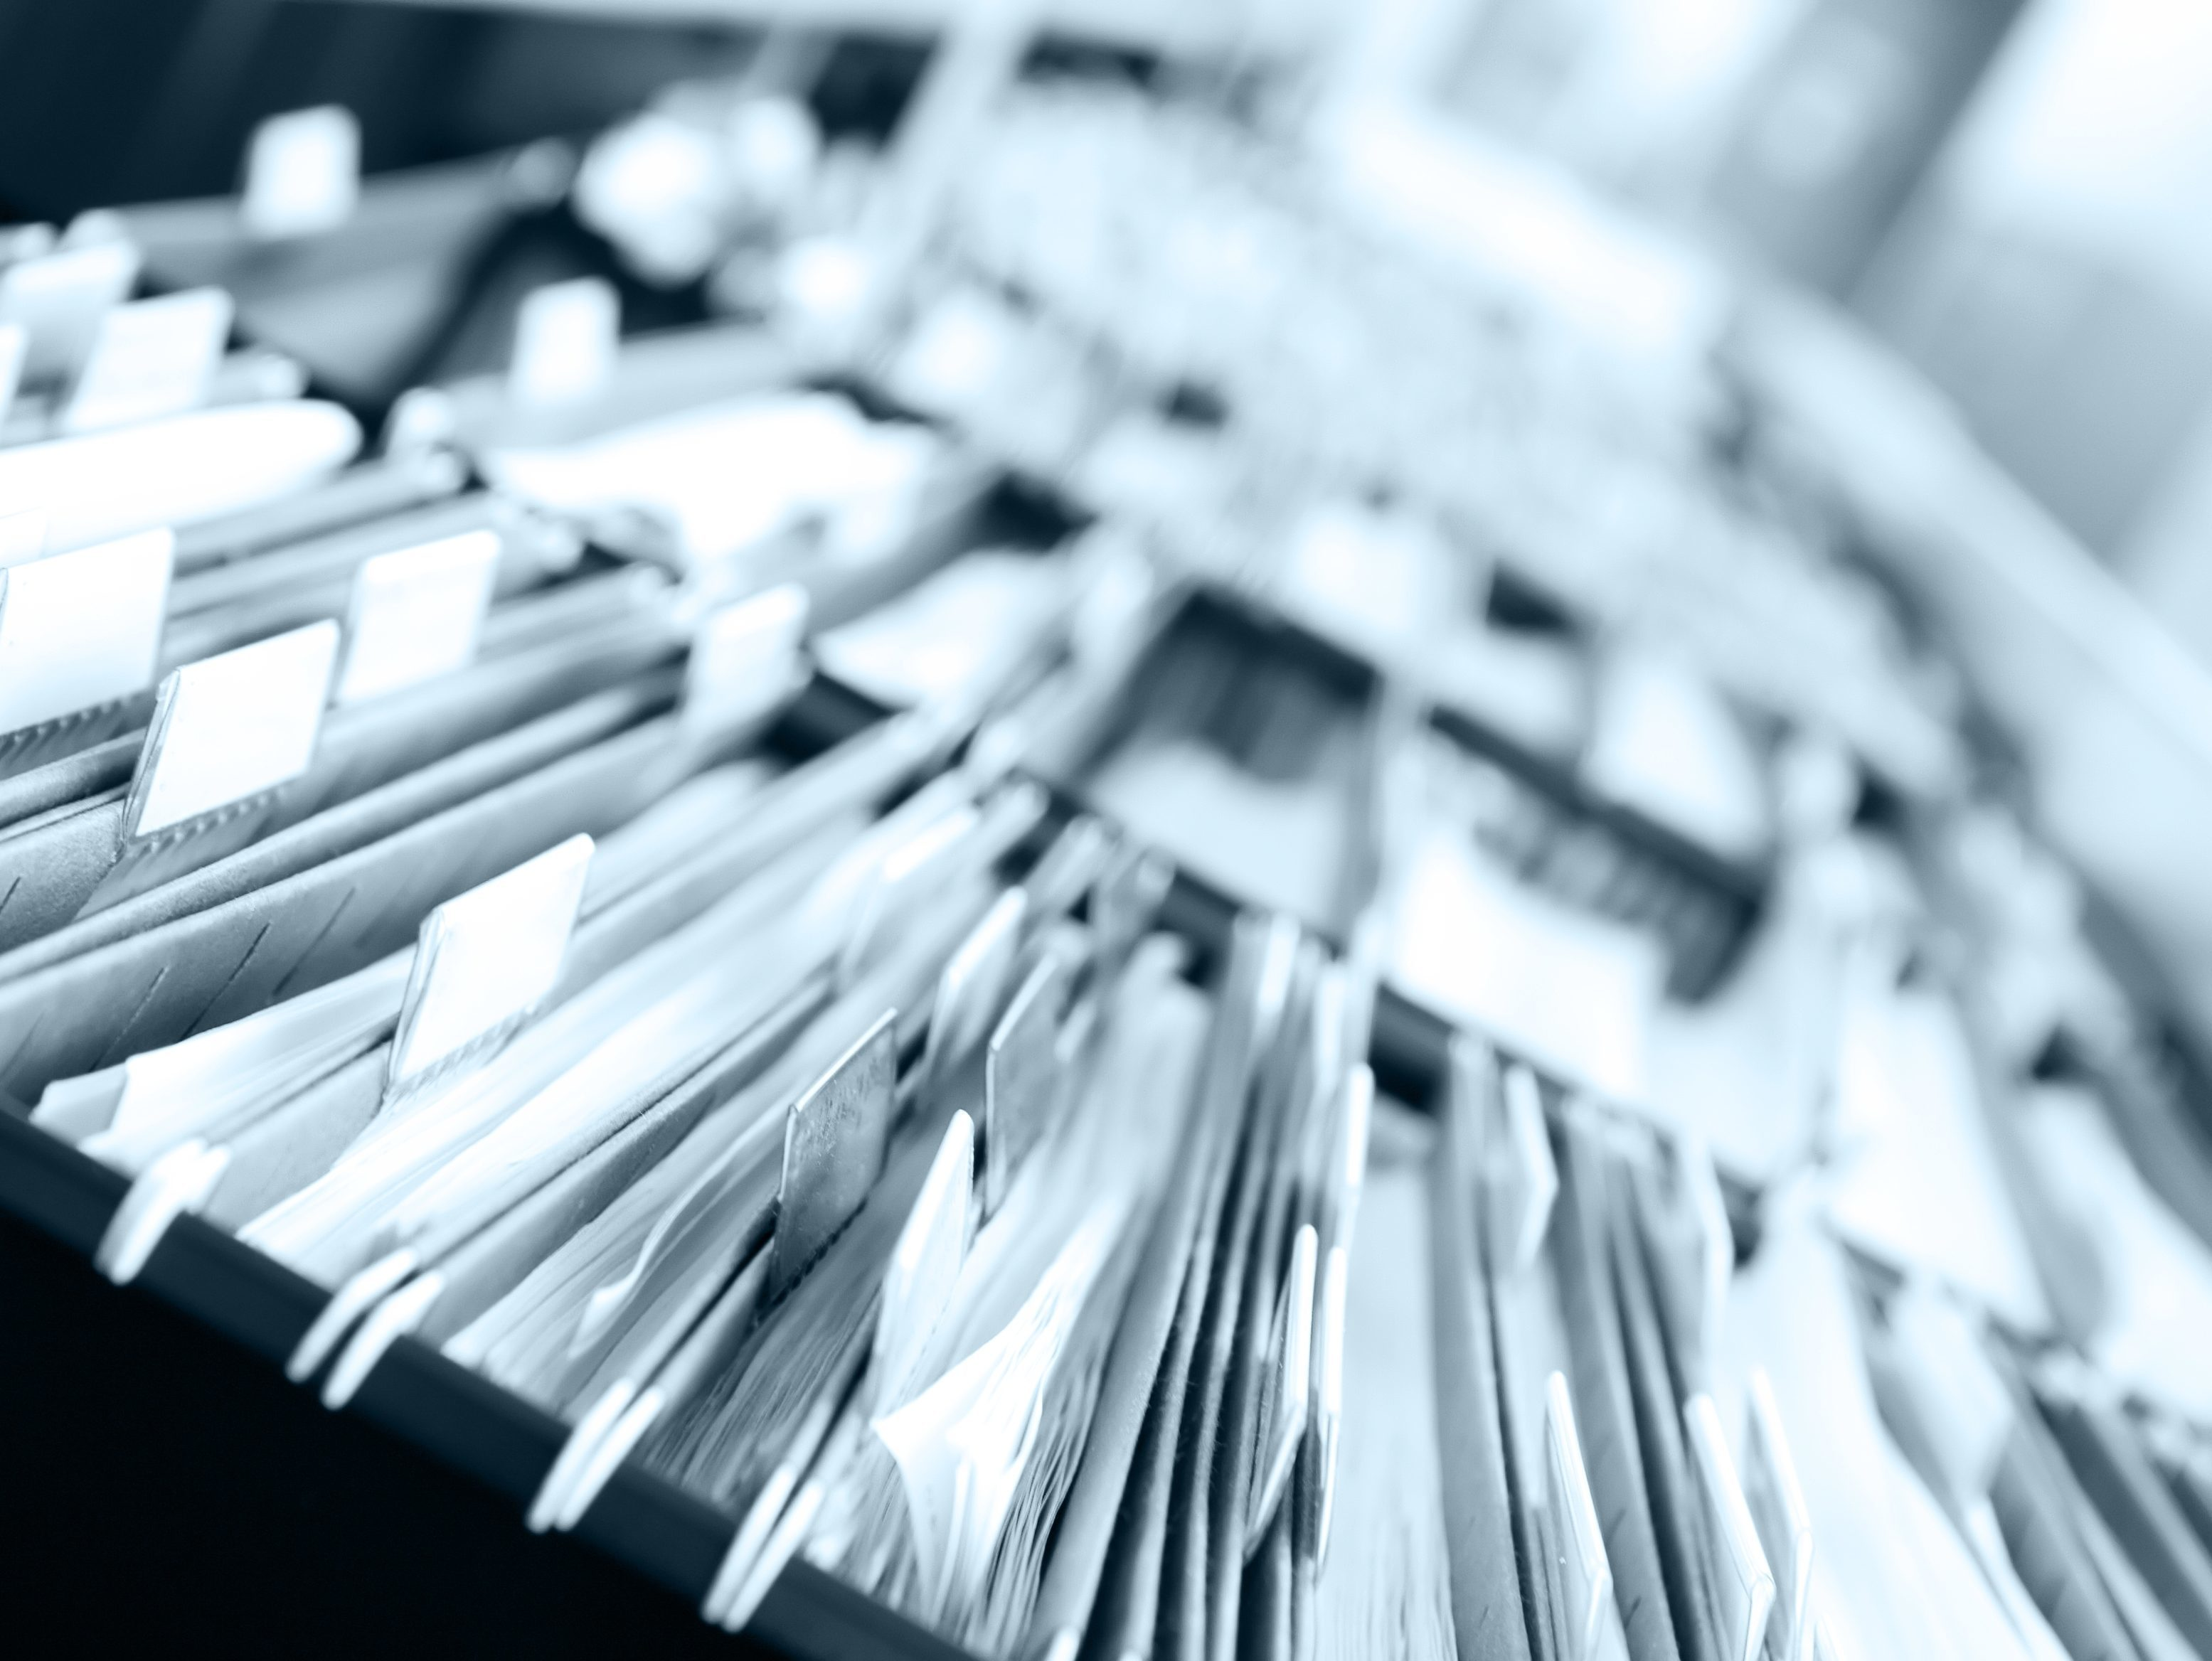 Documents indexed in a filing cabinet. Miami's Best Premier Litigation Support services in index, bates labeling, pagination with express services available. Easy, quick, and hassle free indexing